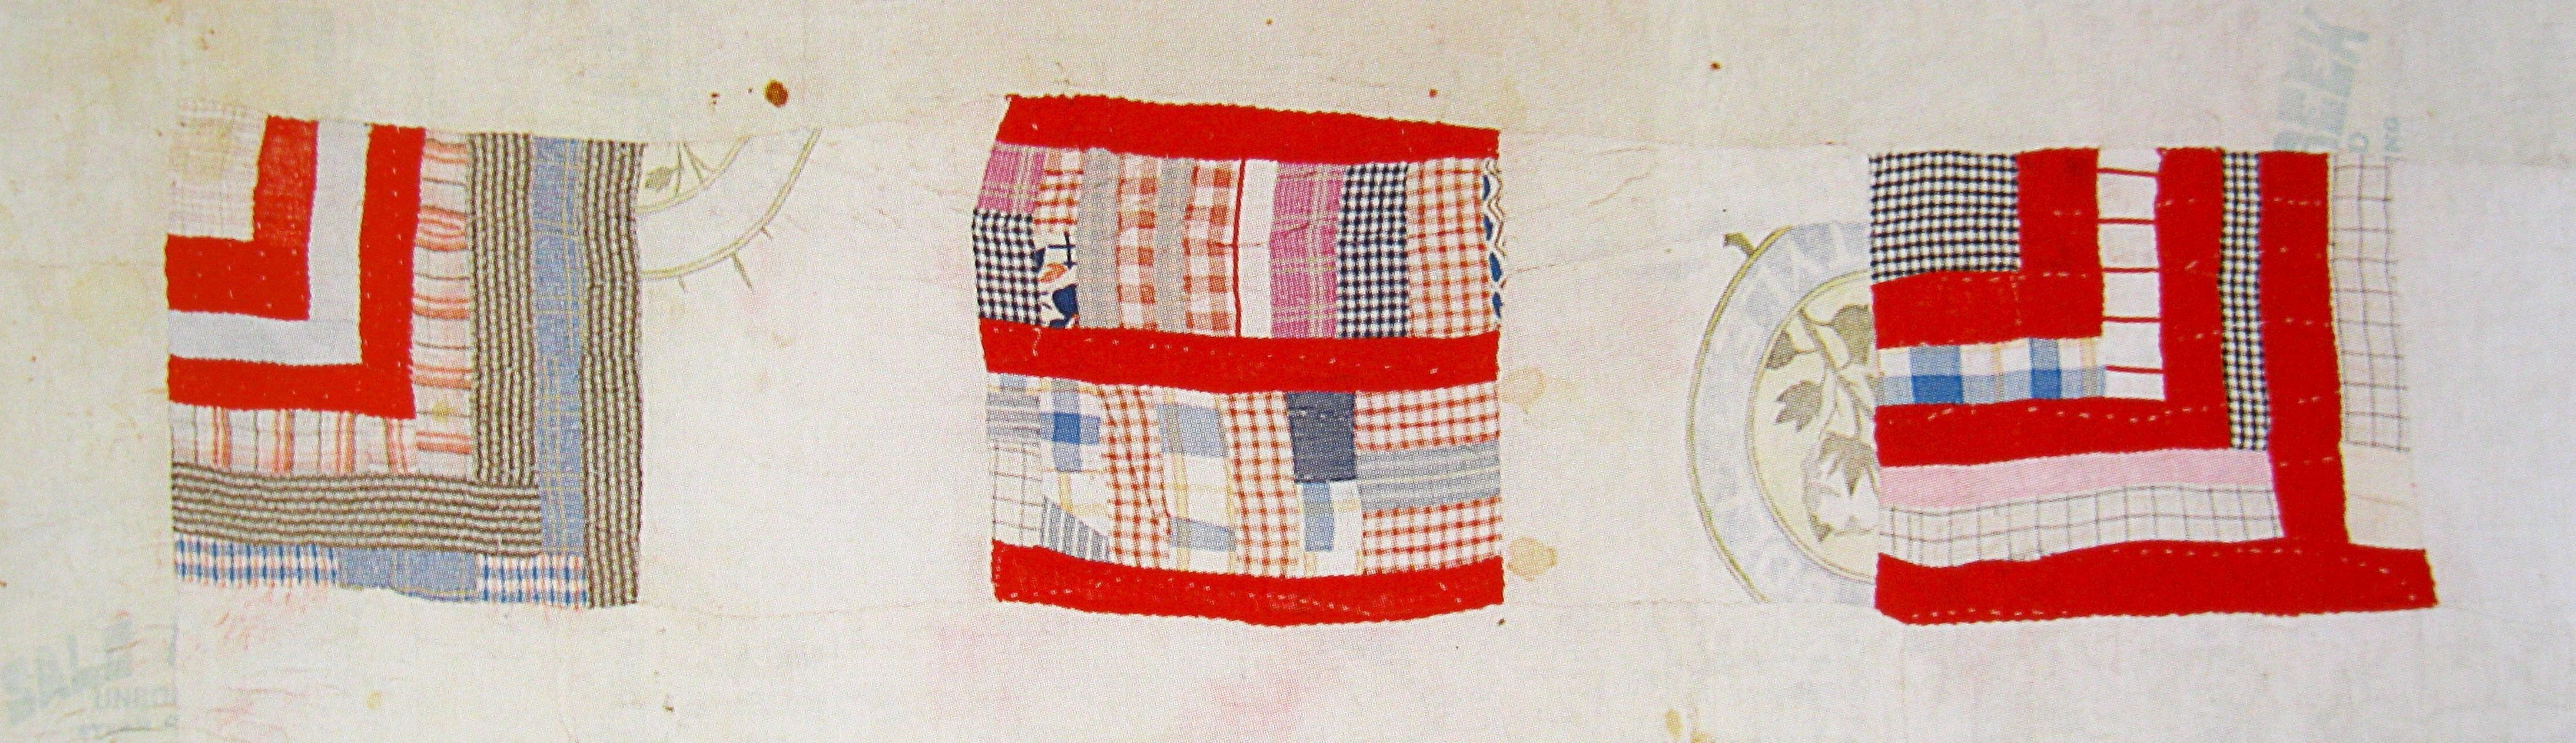 detail of Housetop, by Rachel Carey George; c. 1935